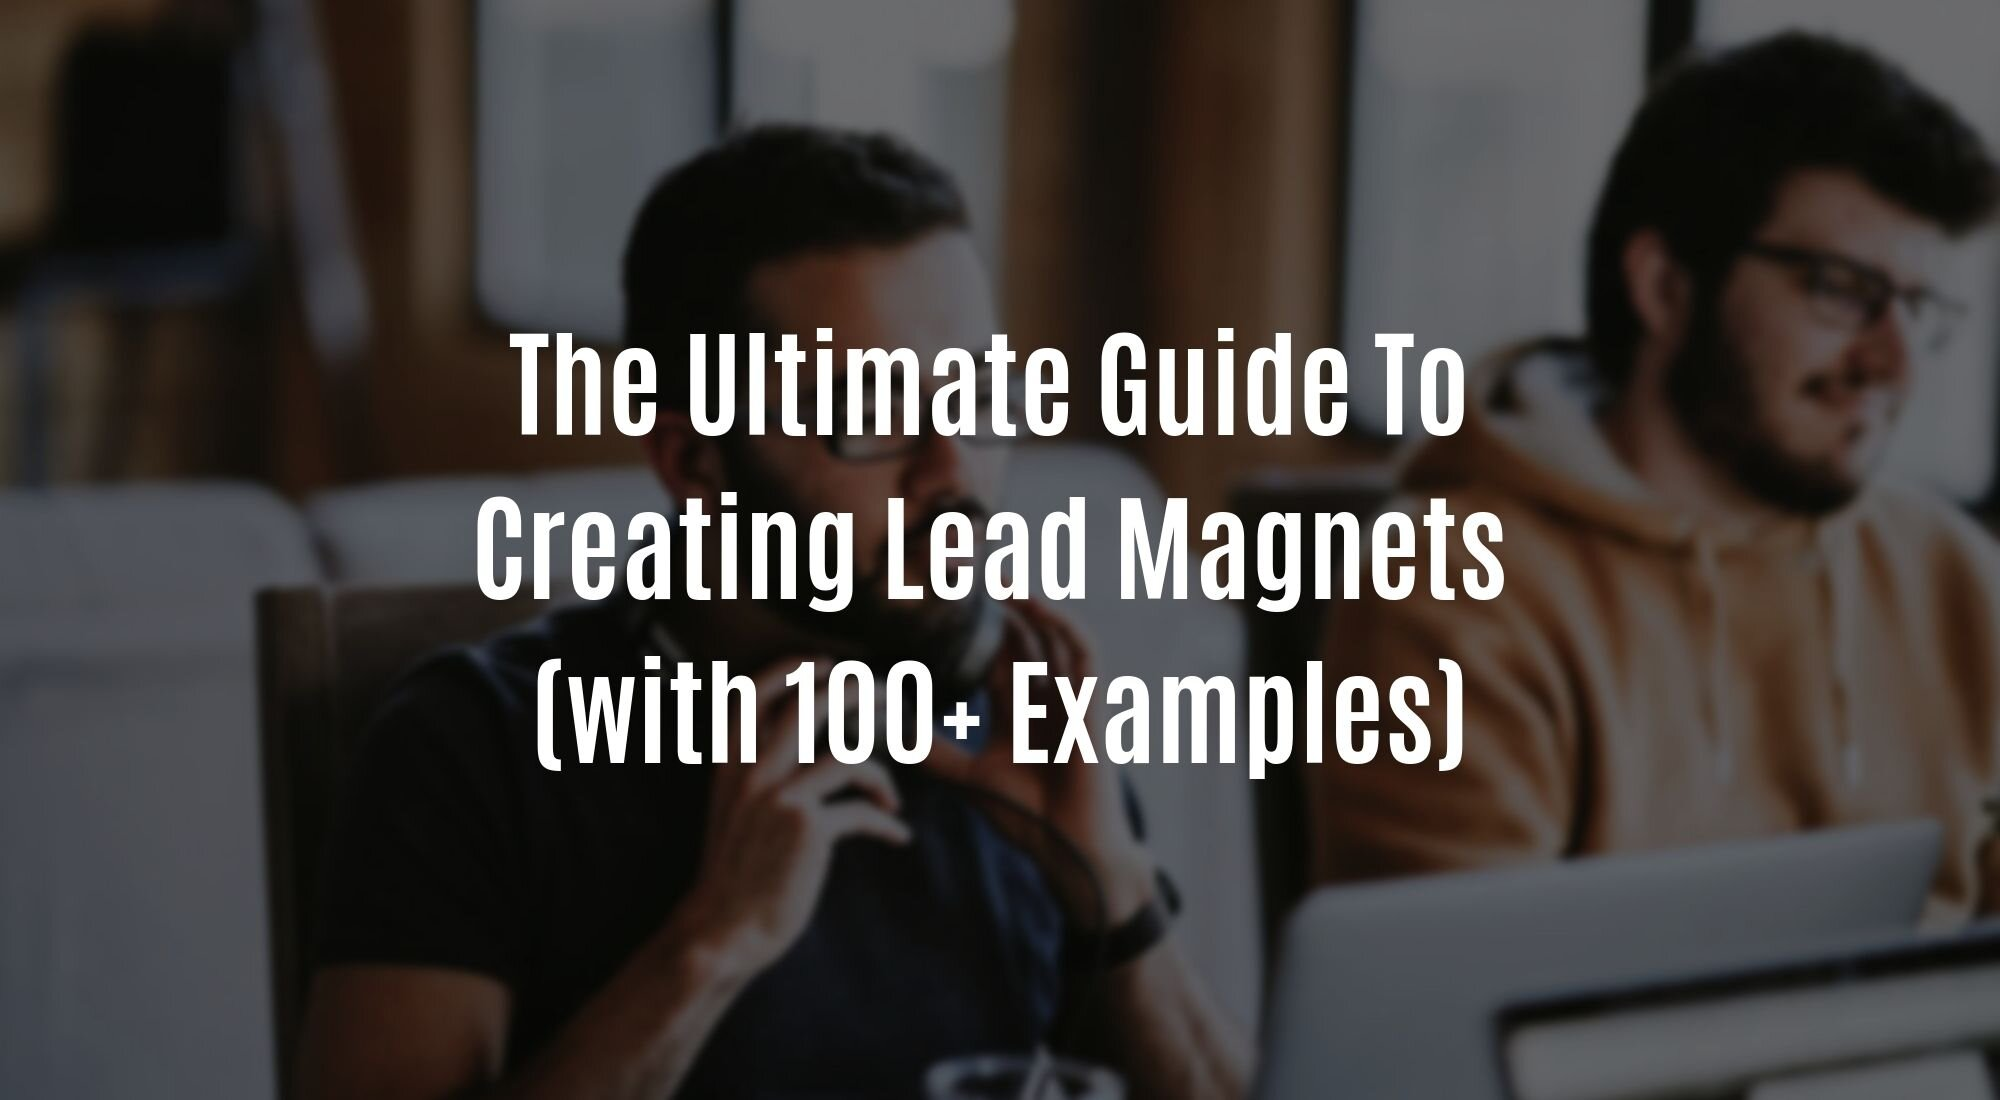 The Ultimate Guide to Creating Lead Magnets (With 100+ Examples).JPG